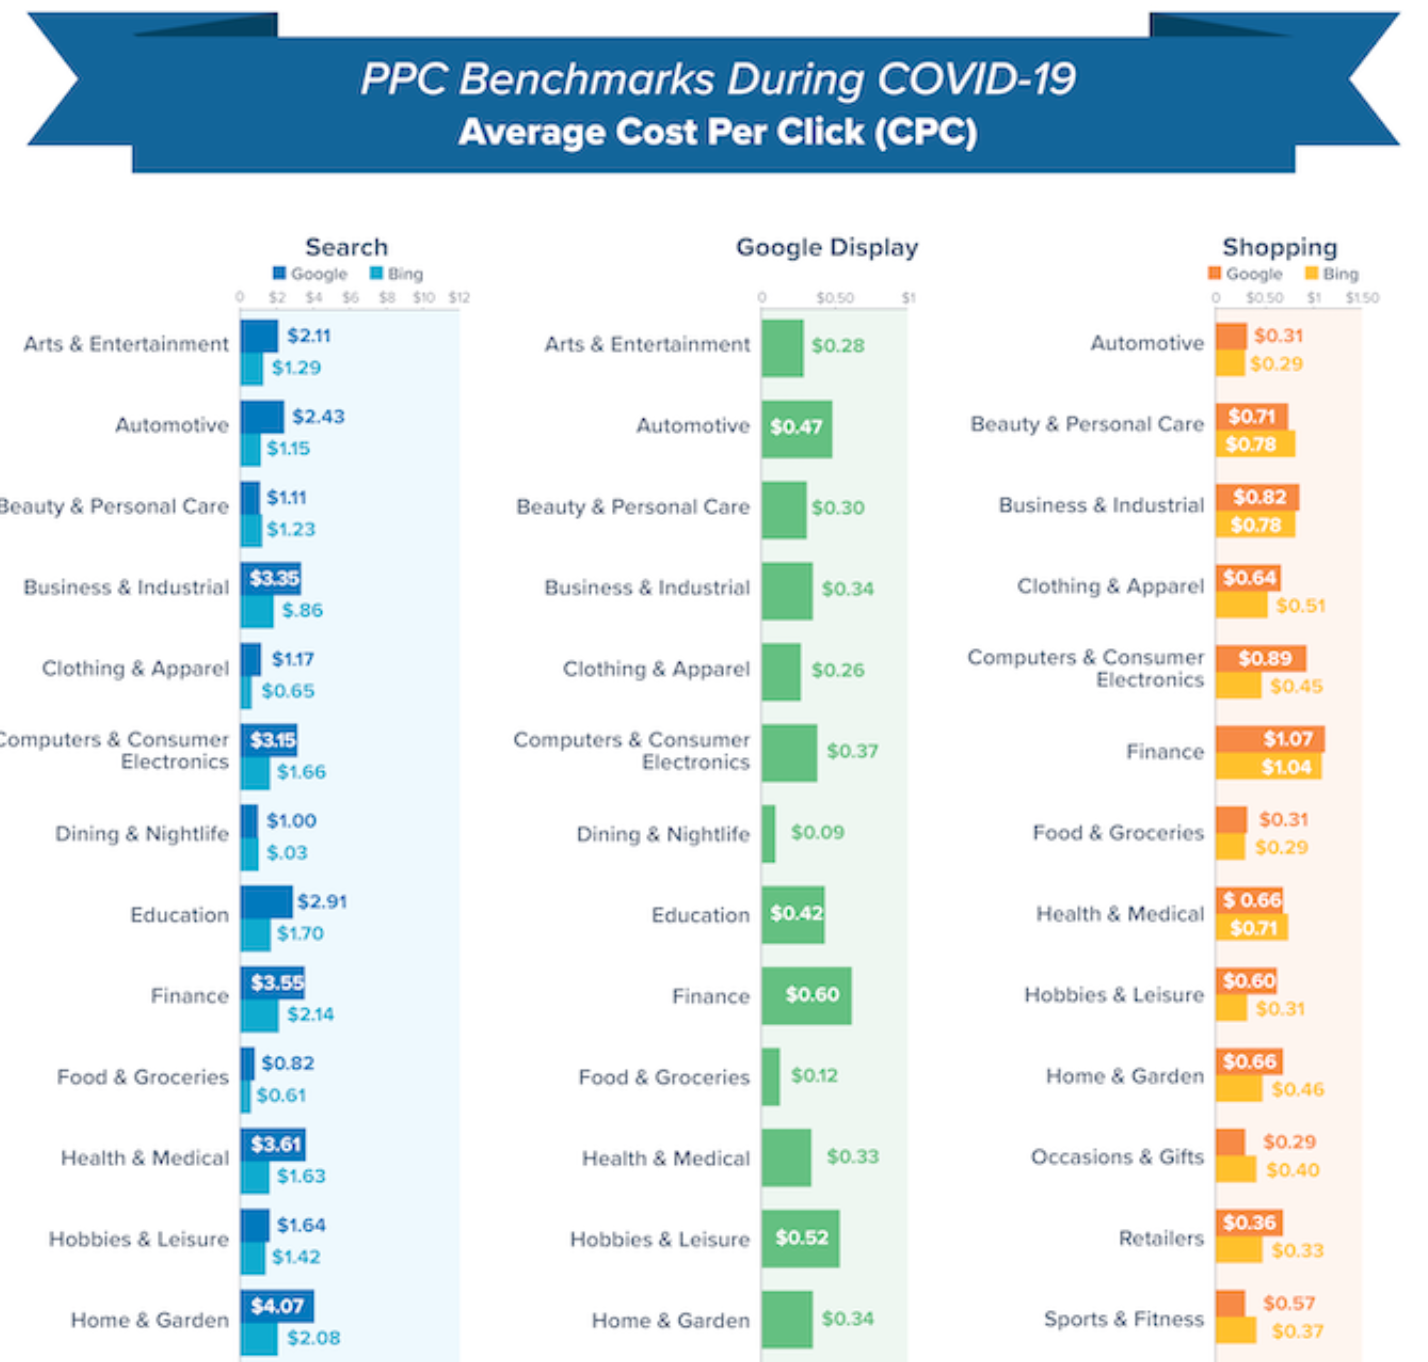 Google Ads benchmarks during COVID